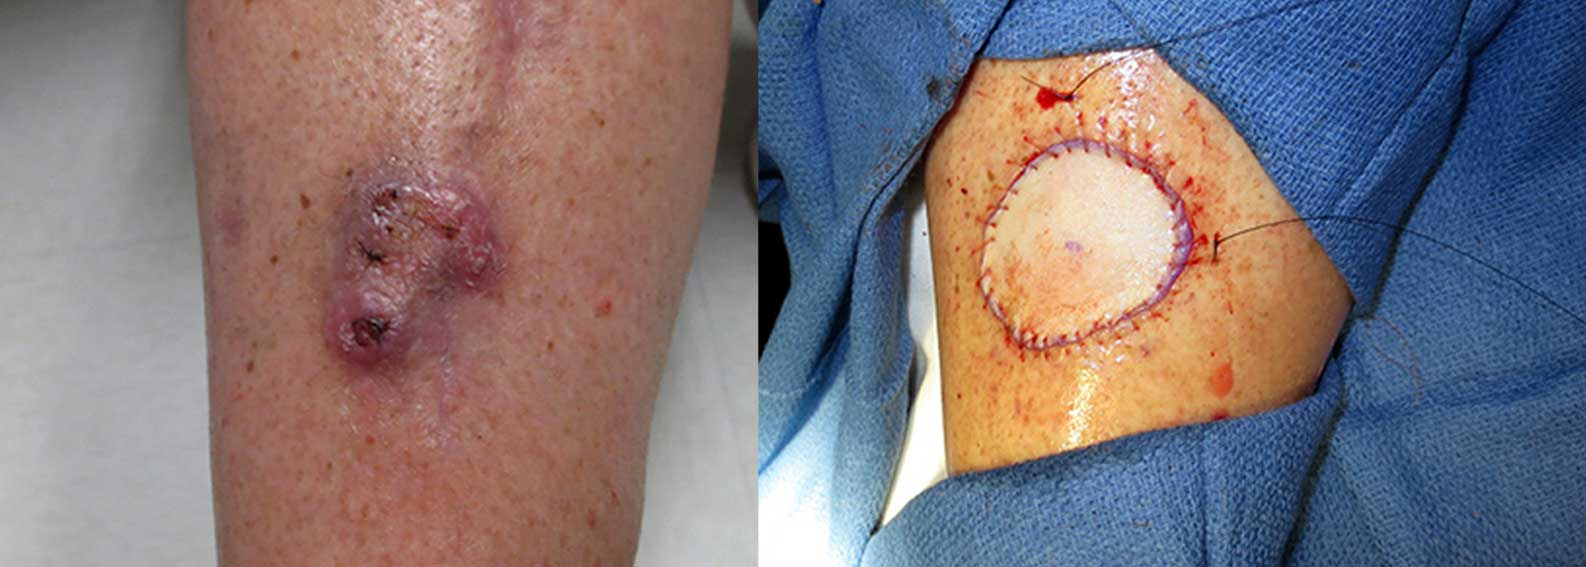 Before and after of skin cancer removal on a leg with skin graft.